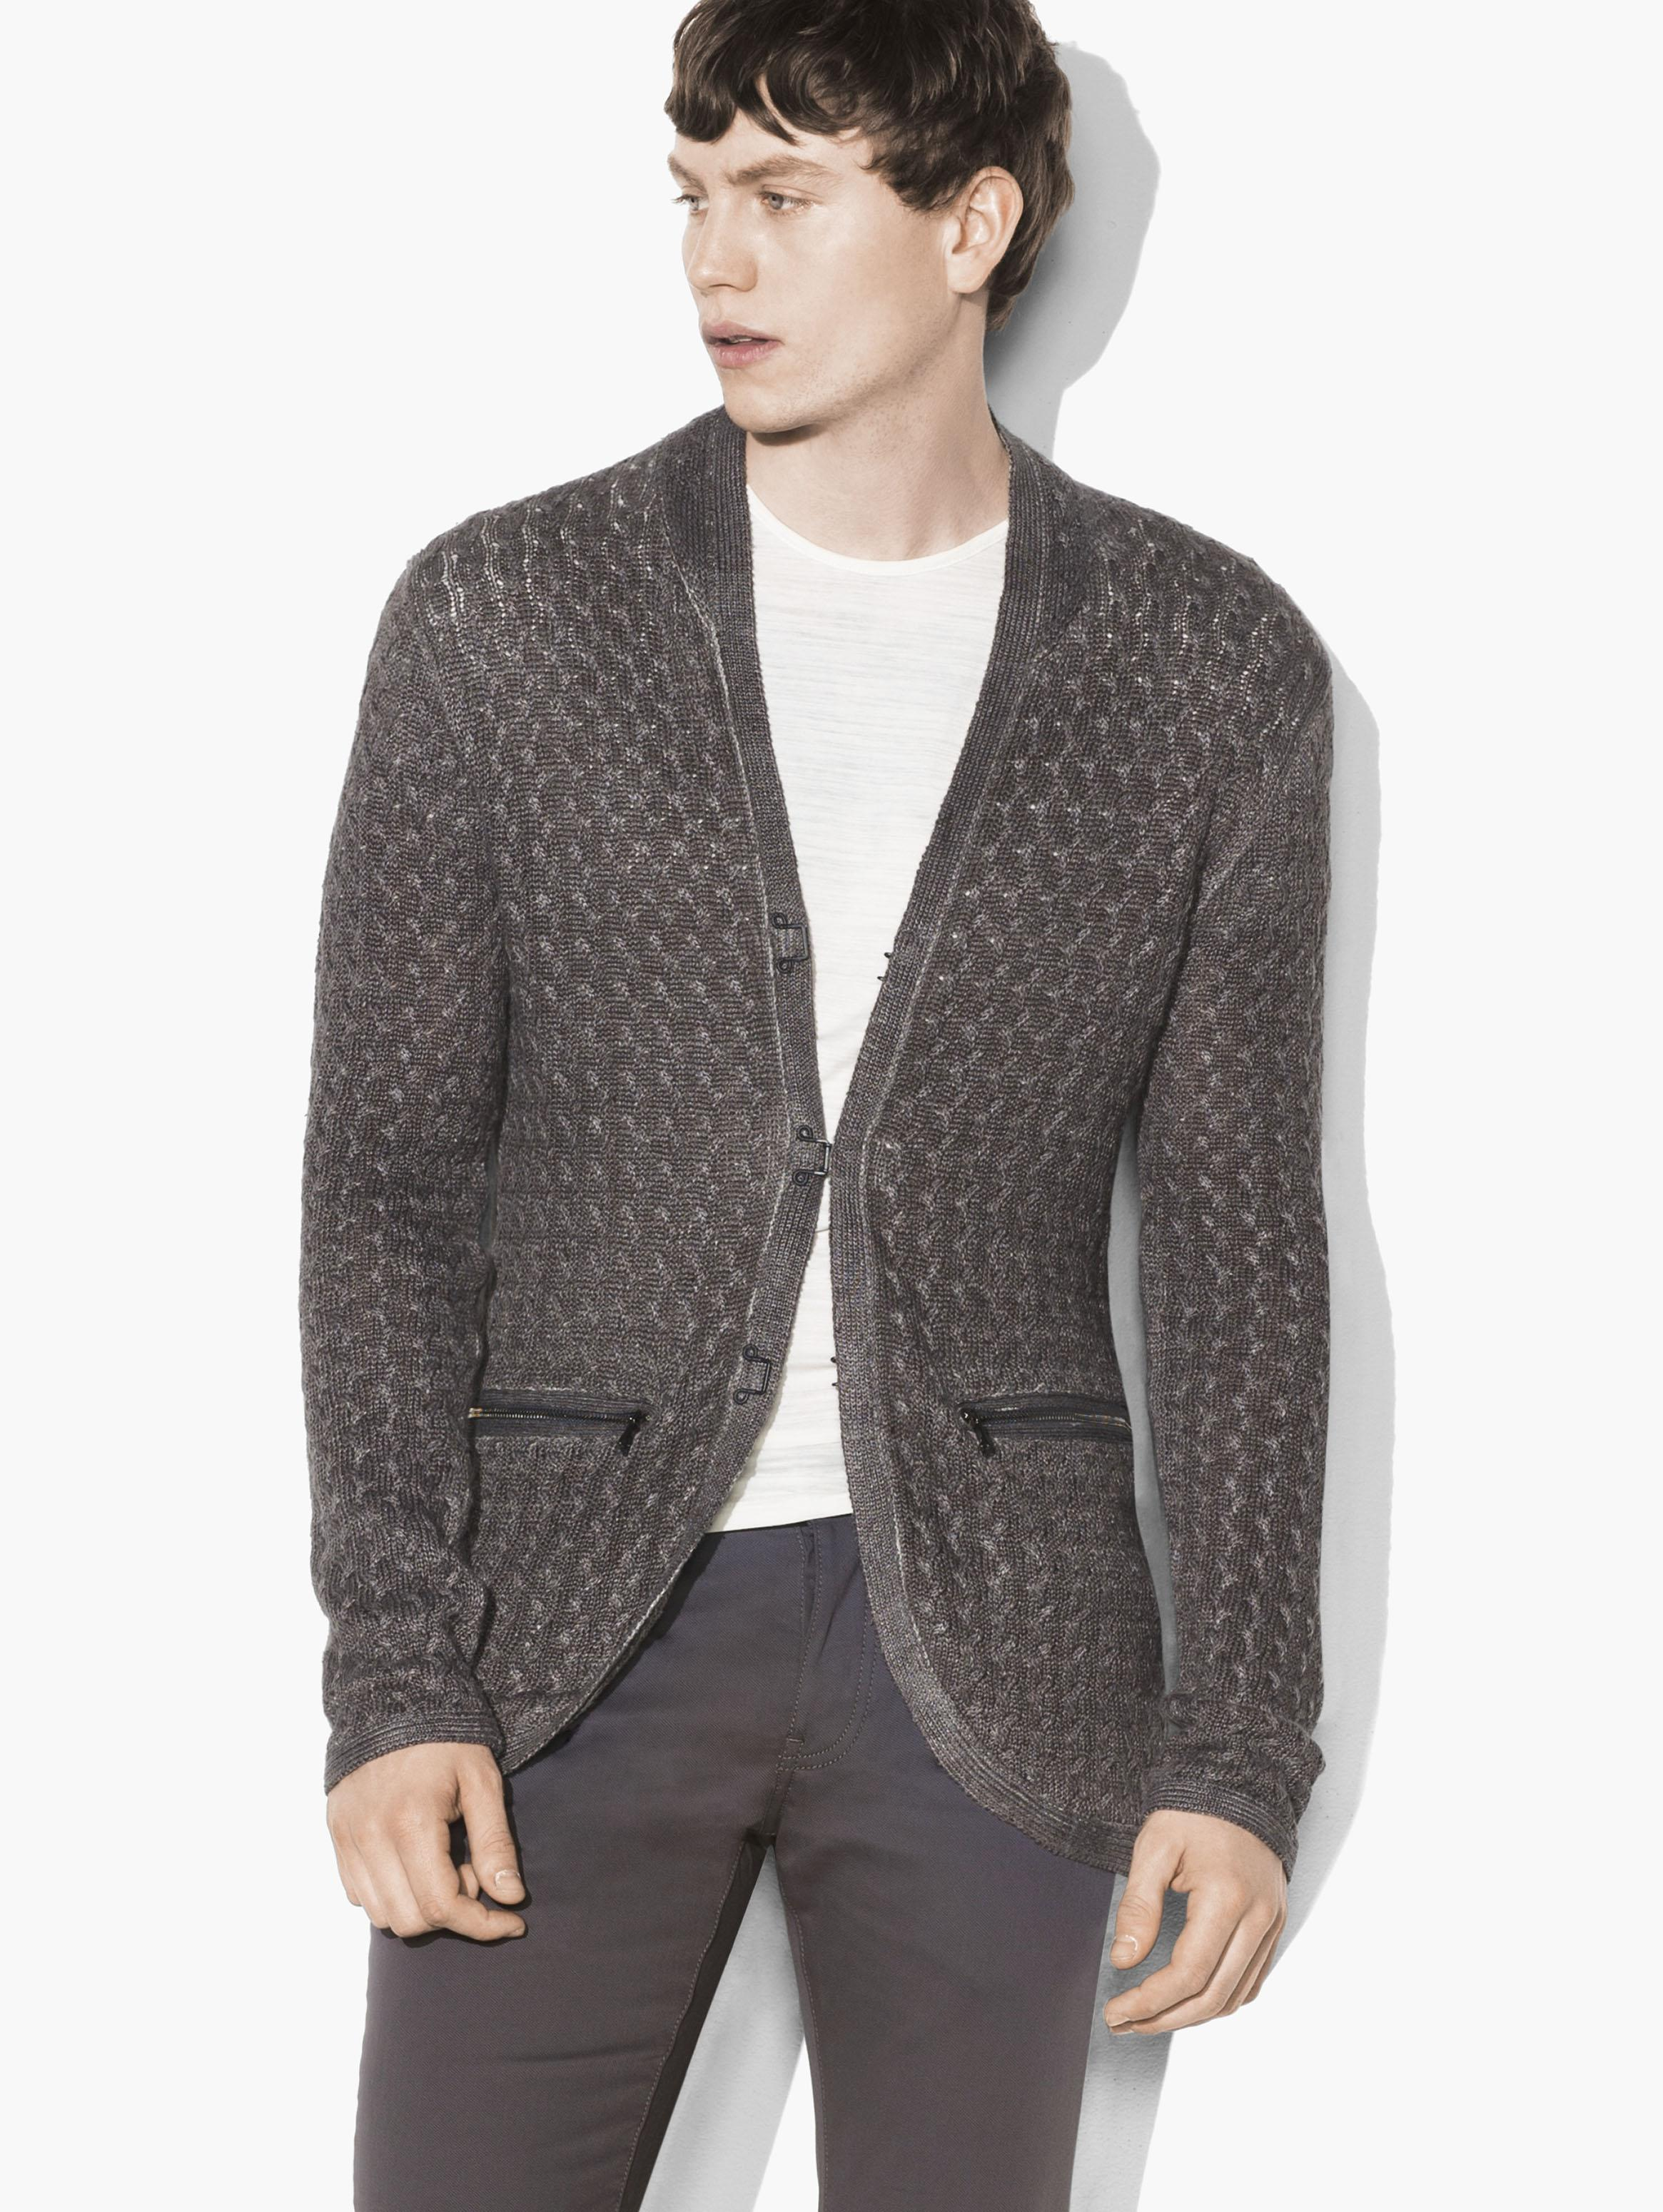 Hook & Bar Cable Sweater Jacket